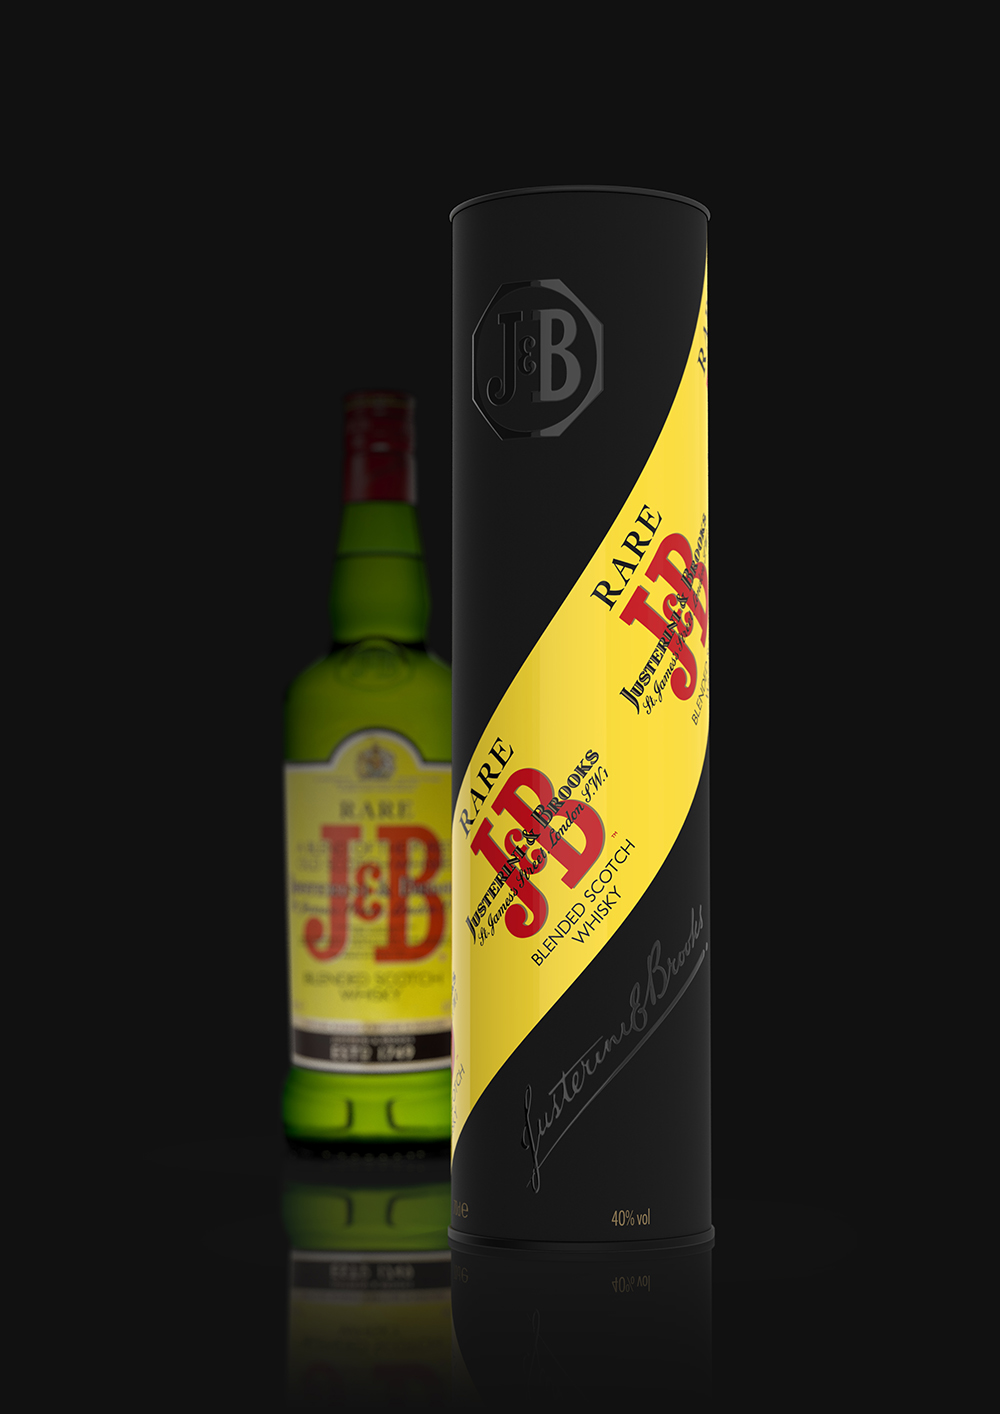 Maison Linea Create J&B Rare Whisky, Giftpack 2020 for Diageo France